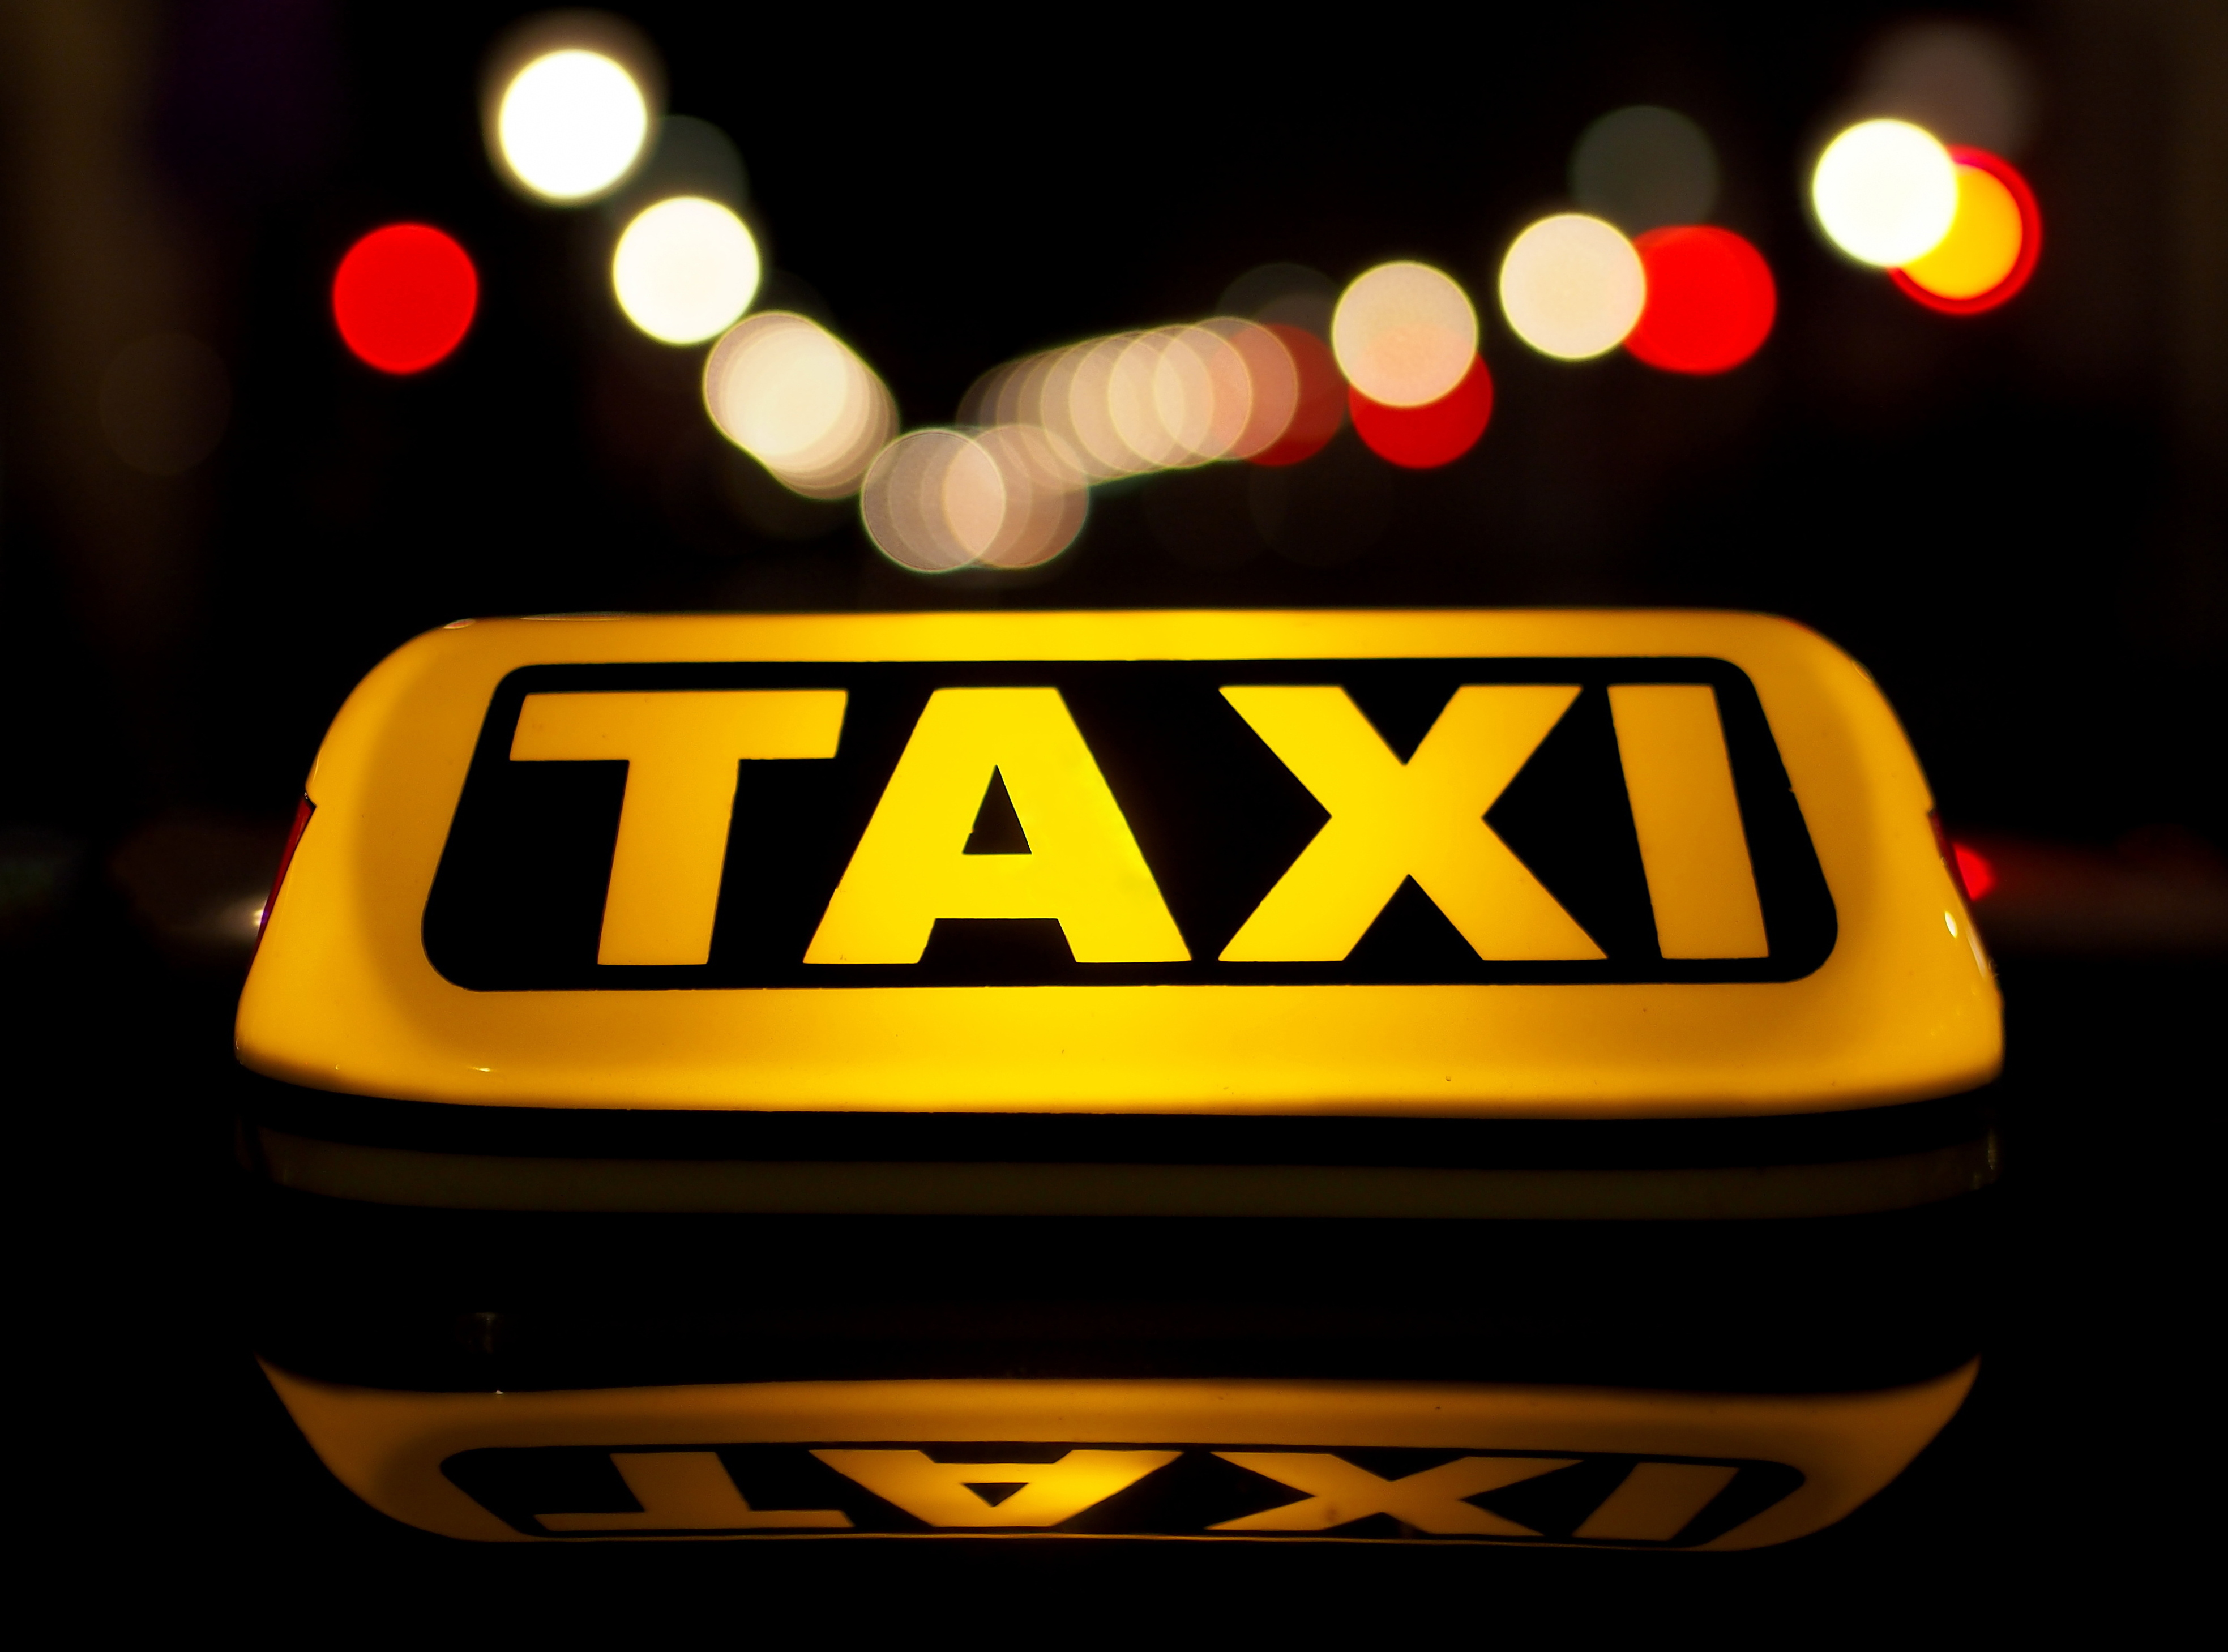 Taxicab - Wikipedia